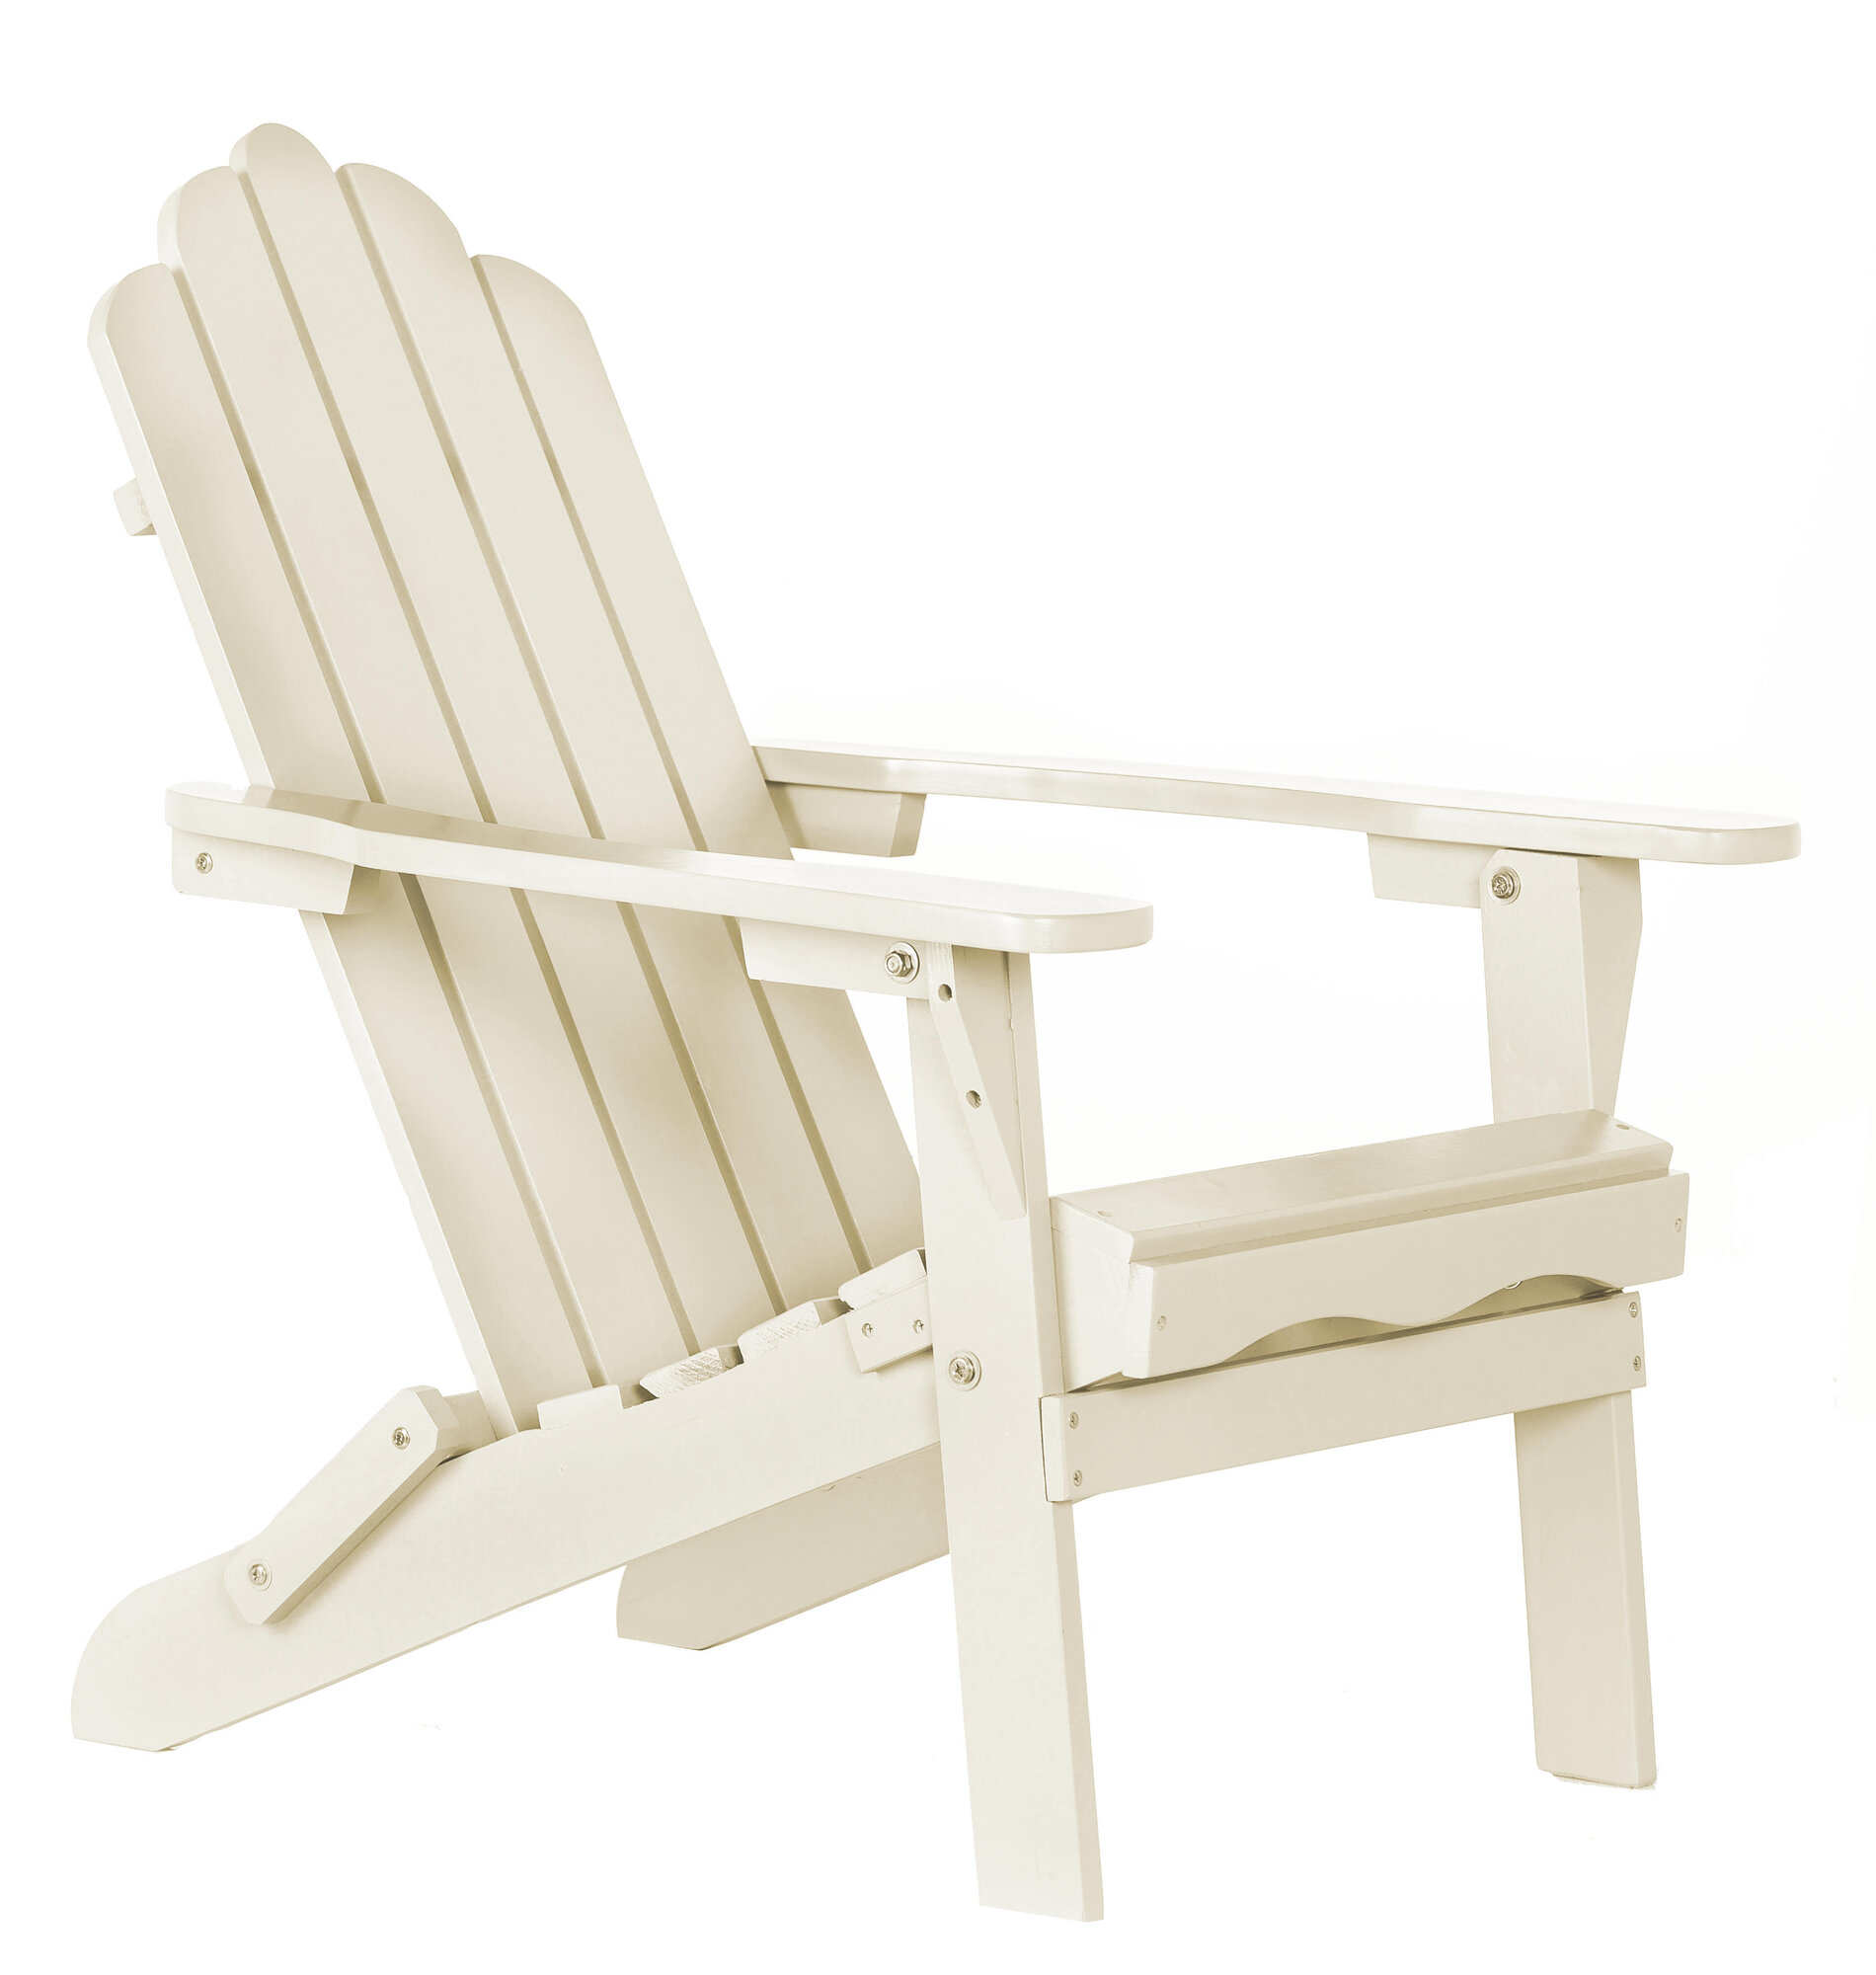 Aspen Brands Poly Recycled Plastic Folding Adirondack Chair